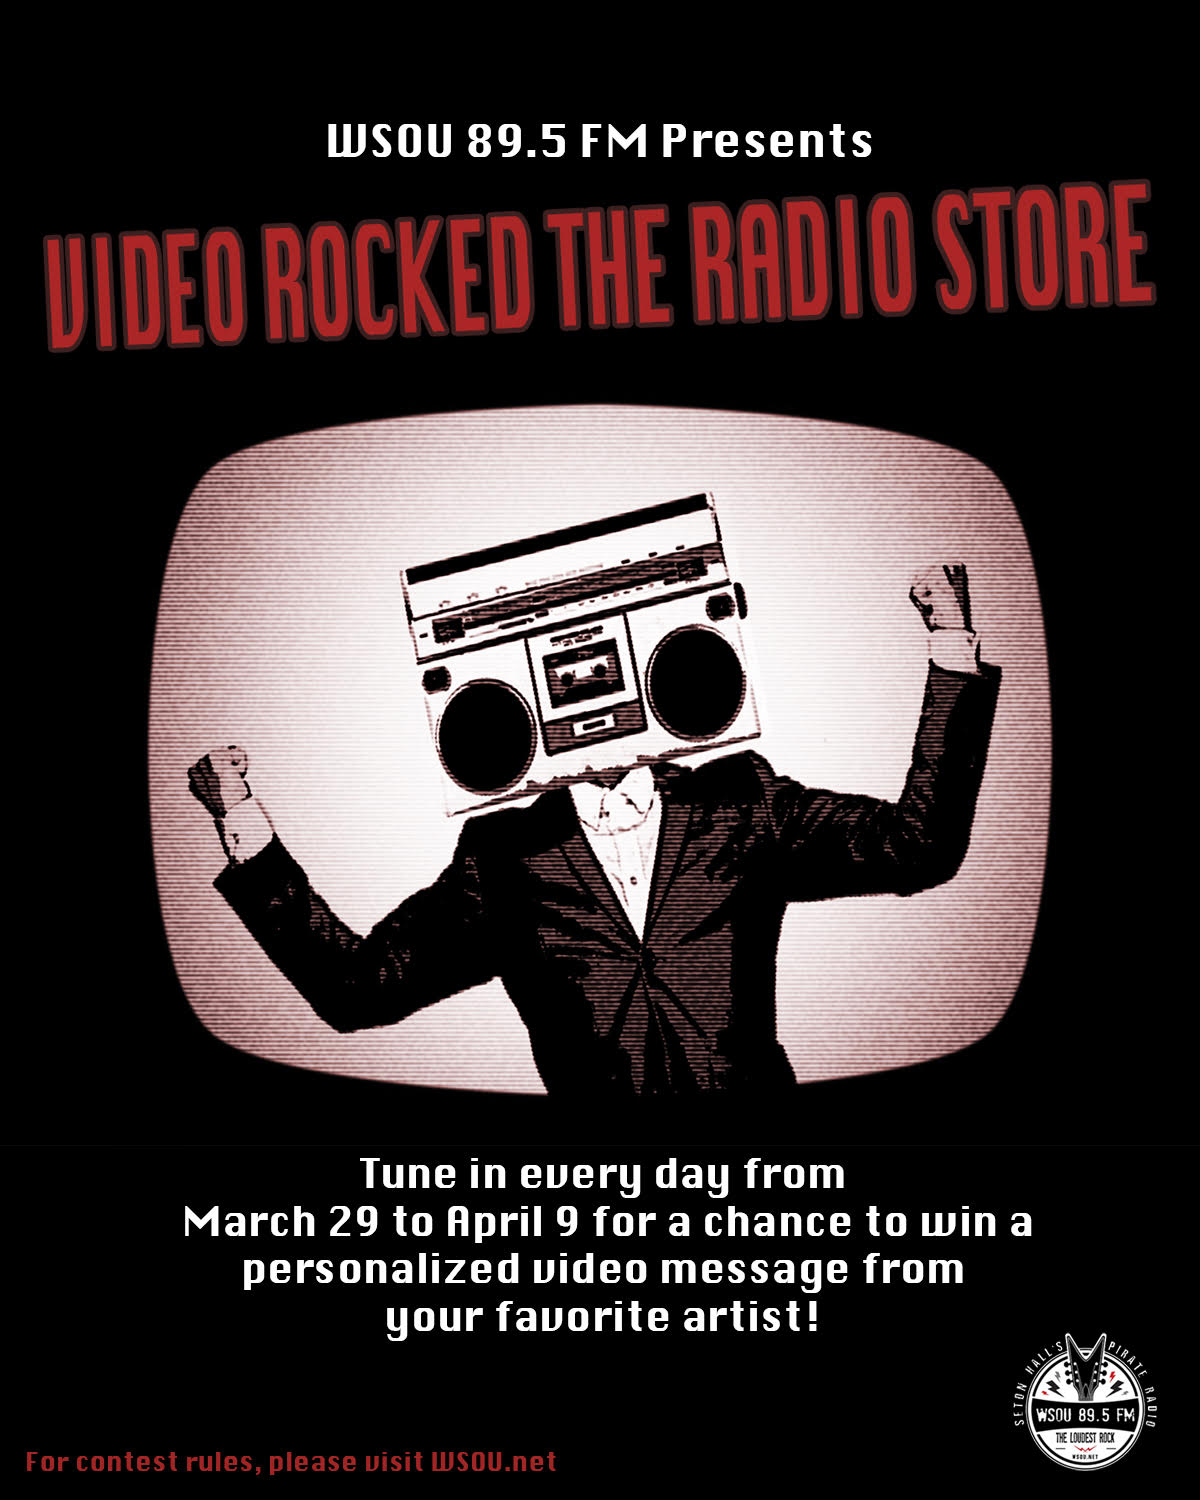 WSOU 89.5 FM Presents VIDEO ROCKED THE RADIO STORE Tune in every day from March 29 to April 9 for a chance to win a personalized video message from your favorite artist! For contest rules, please visit WSOU.net